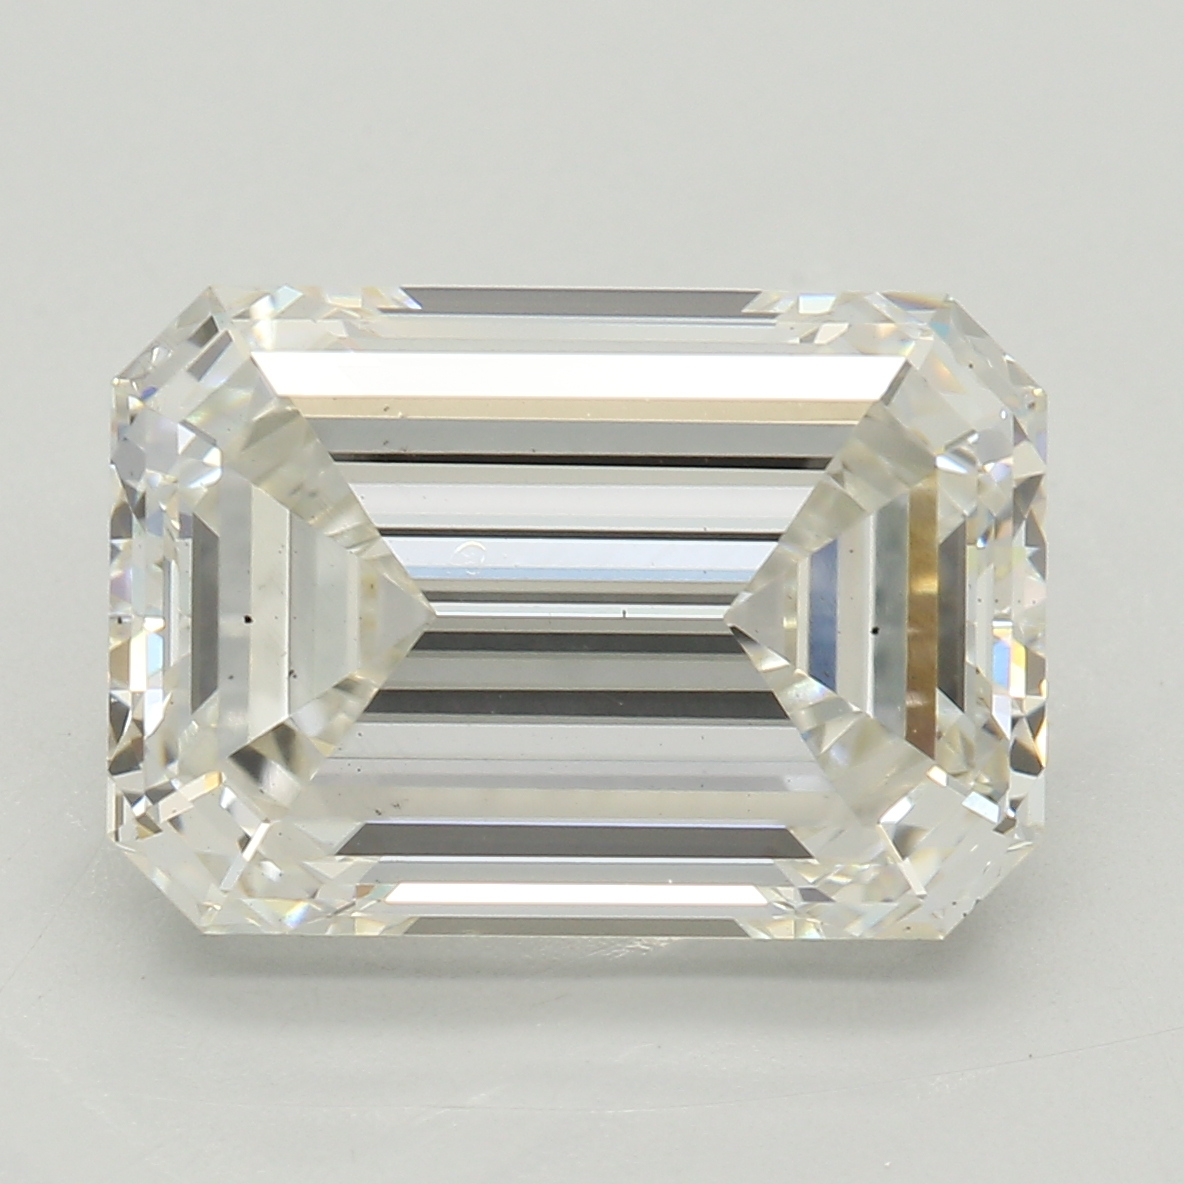 Emerald Cut 3.30 Carat J Color Vs2 Clarity Sku Lg67117412